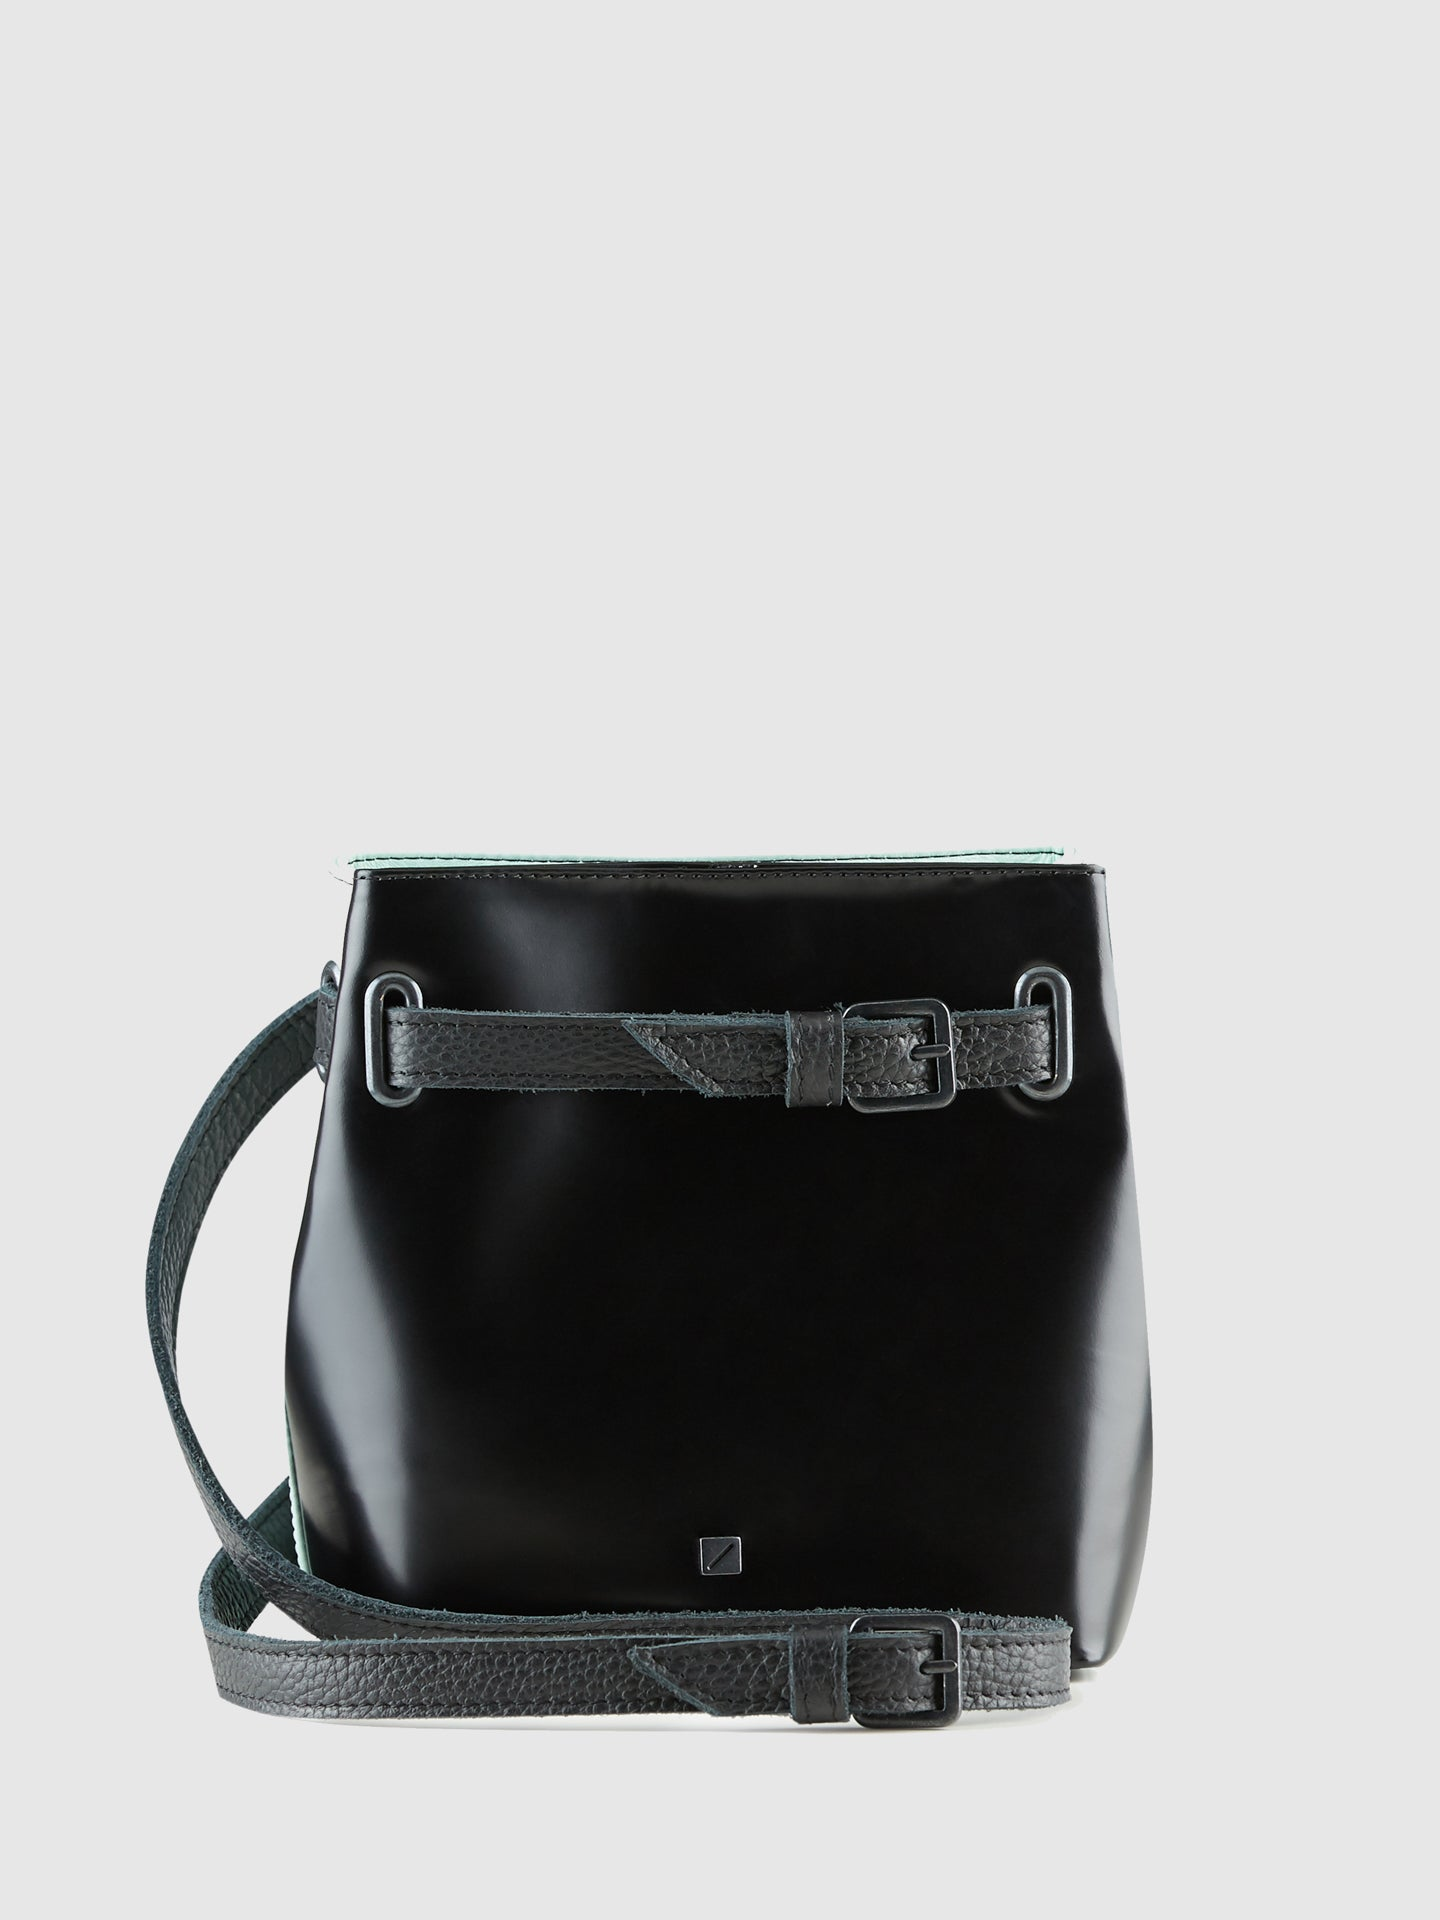 Maria Maleta Black and Teal Reversible Crossbody Bag